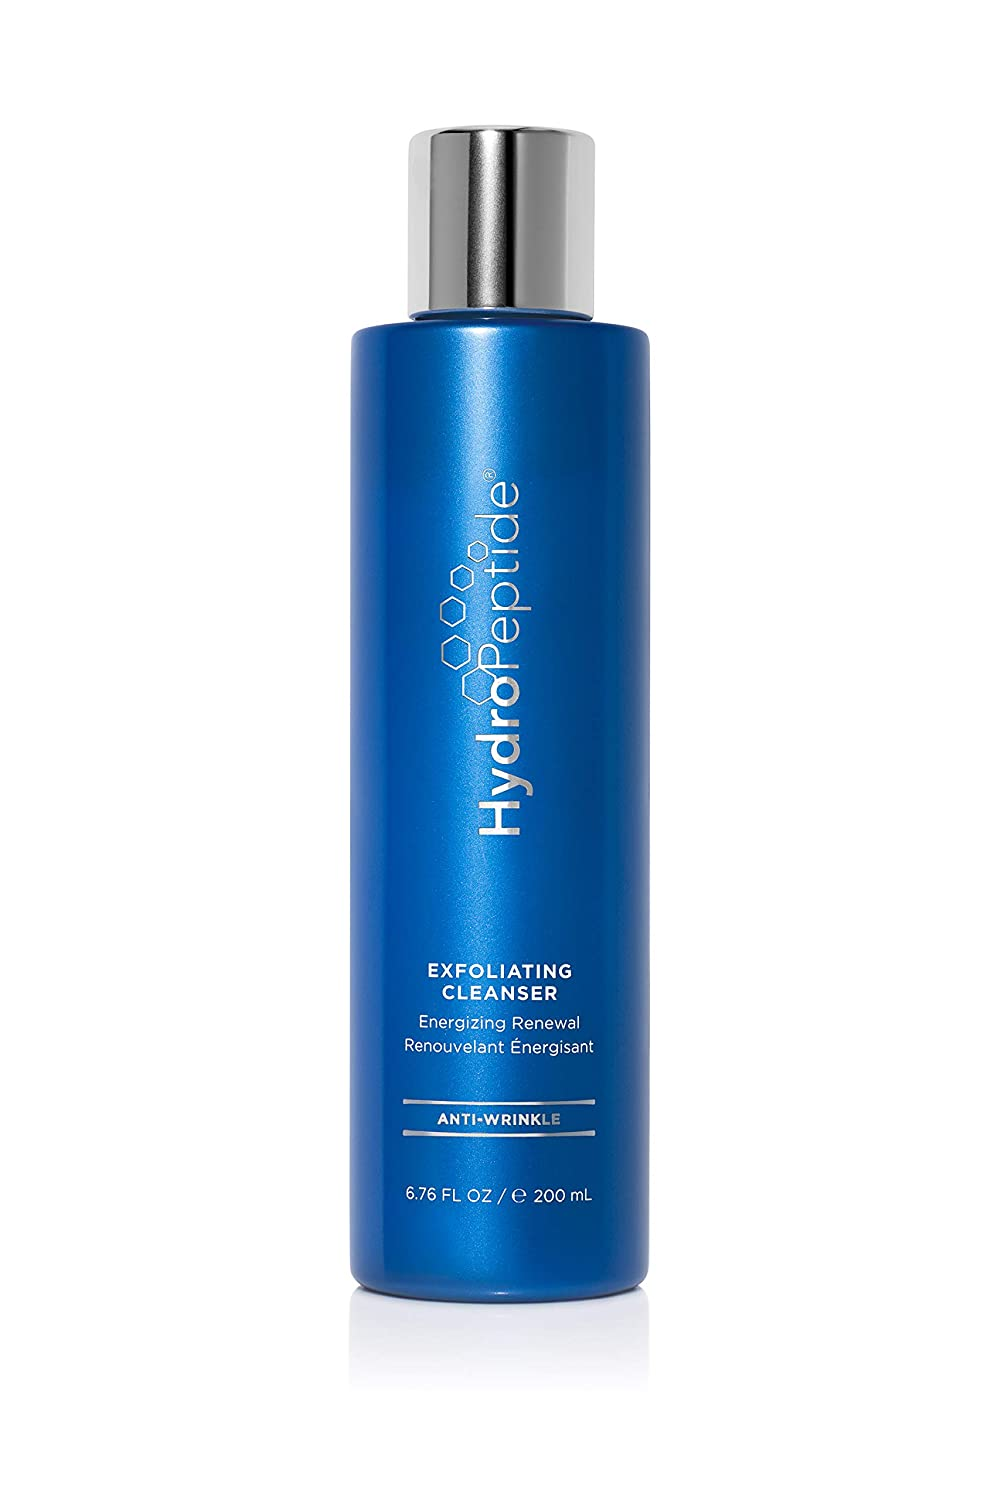 HydroPeptide Exfoliating Energizing Renewal Cleanser, 6.76 Fl